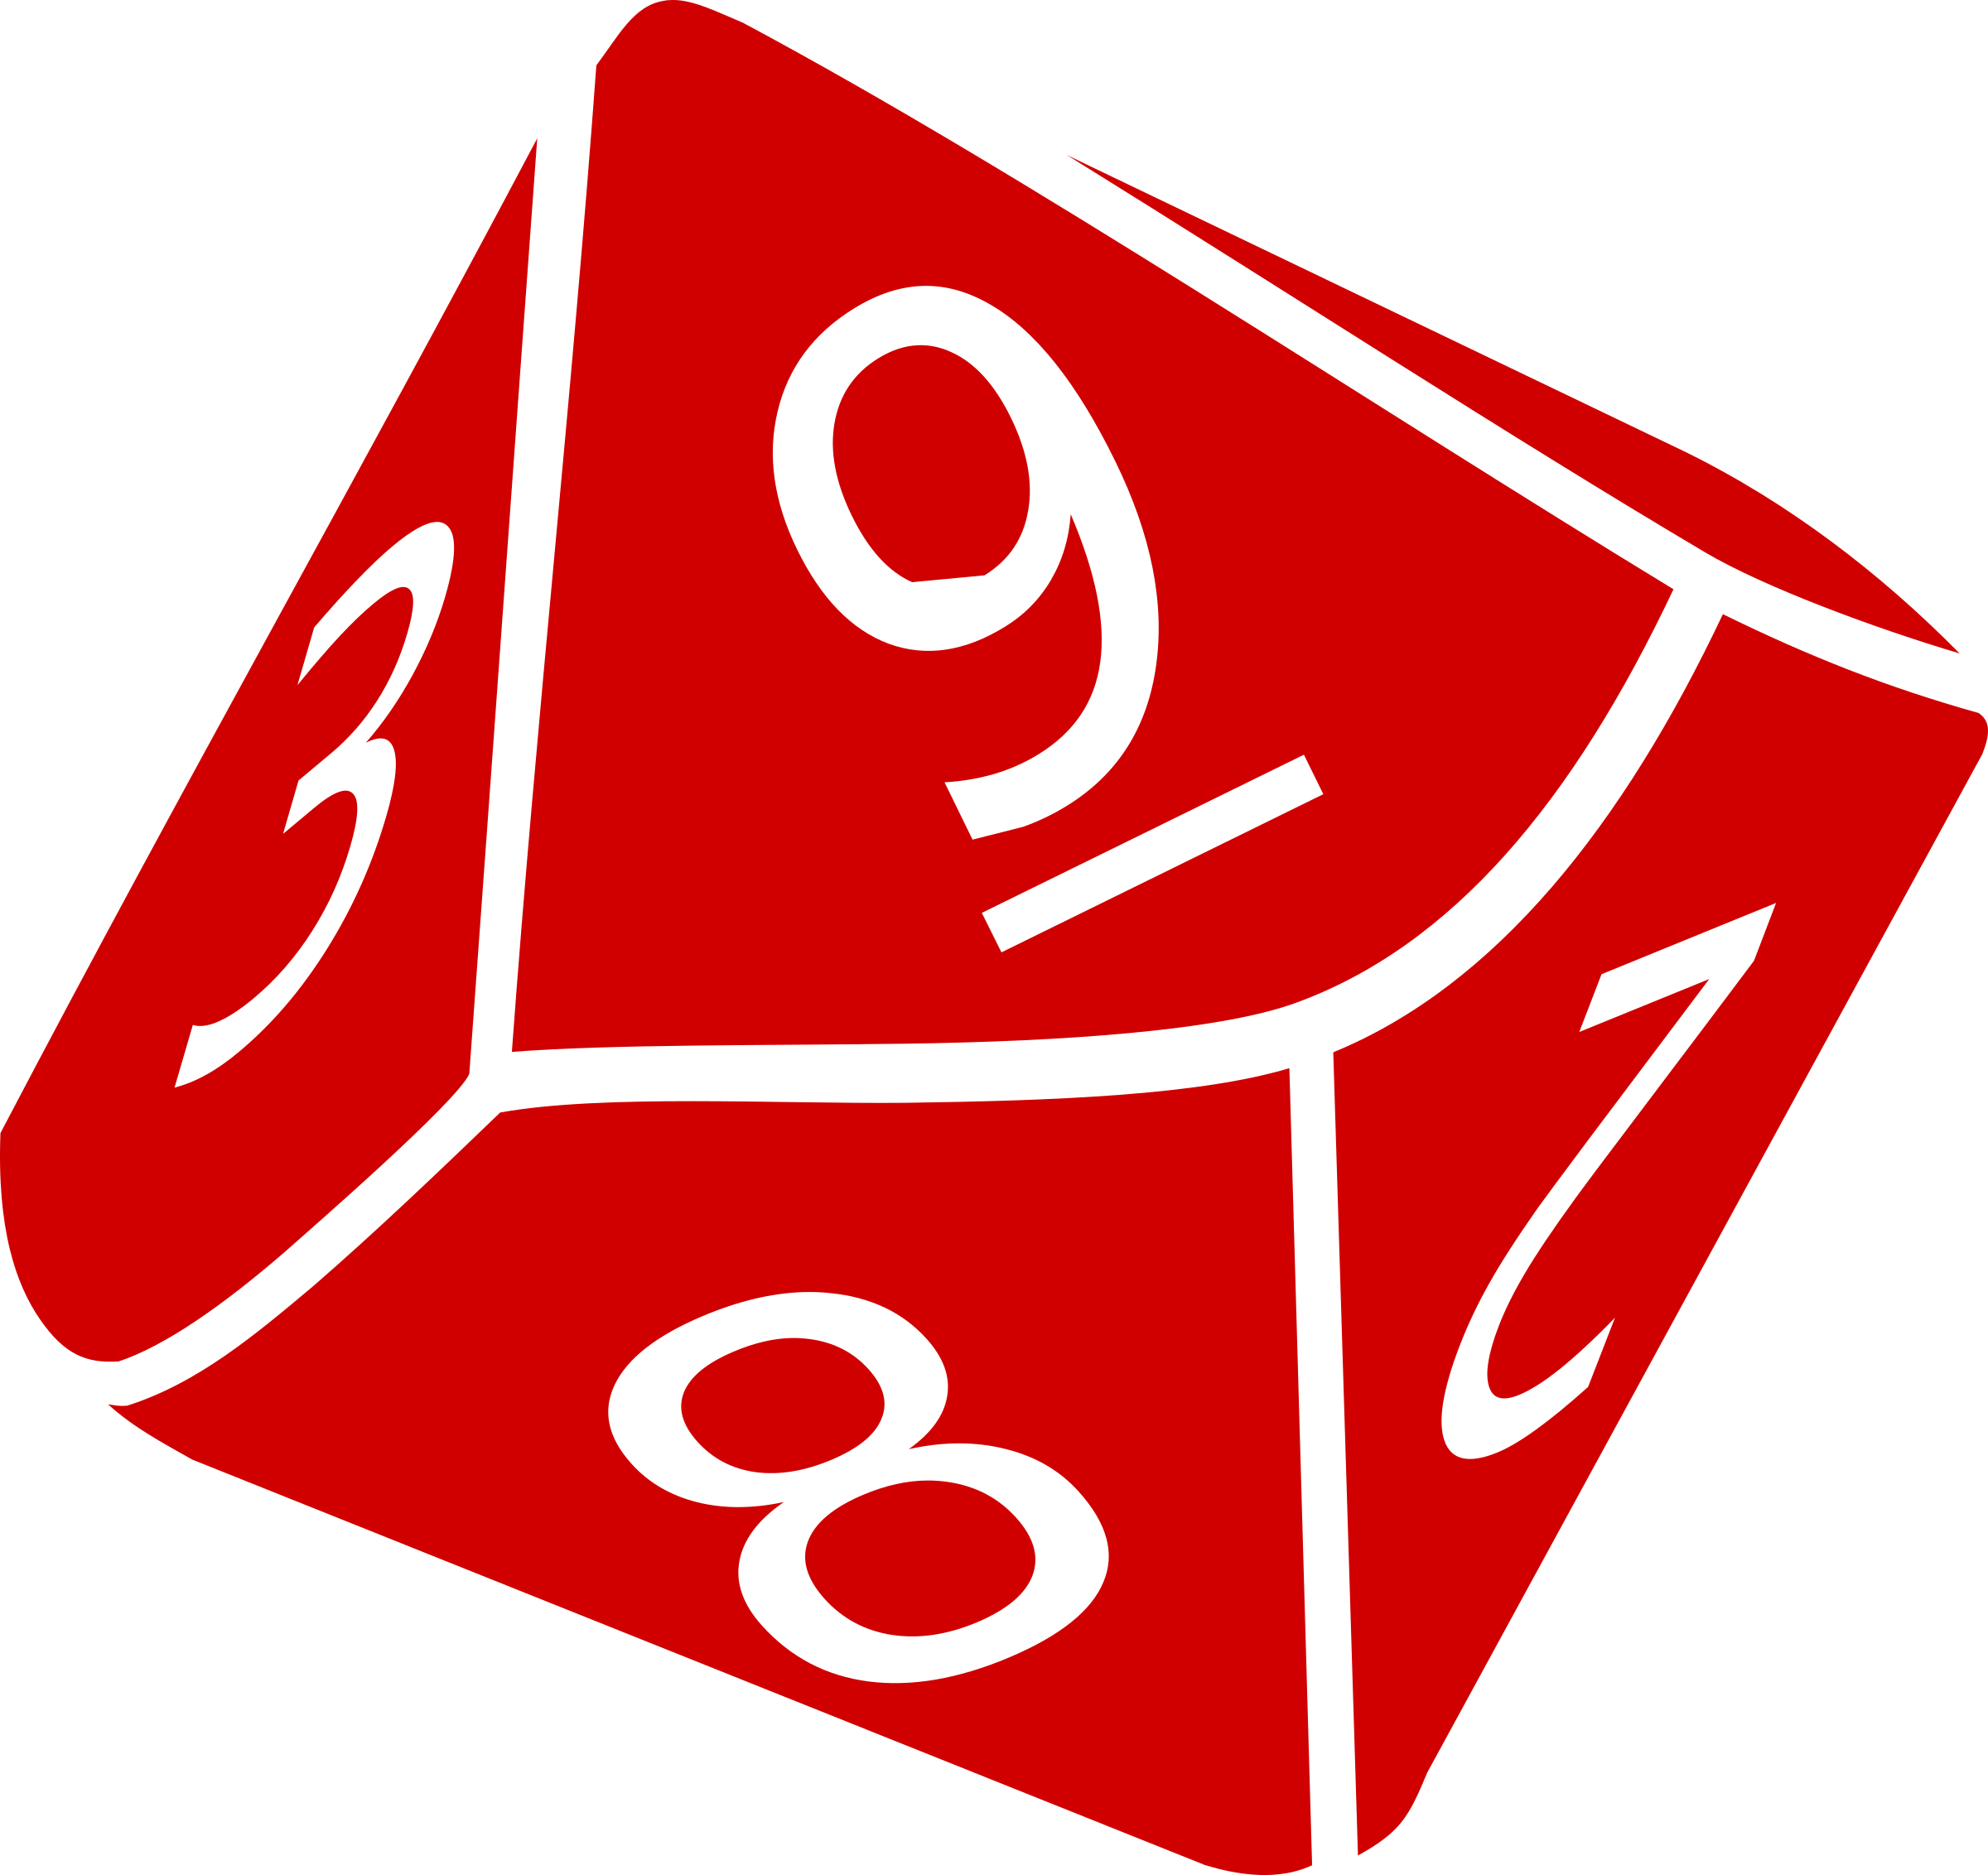 Dnd dice vector clipart images gallery for free download.